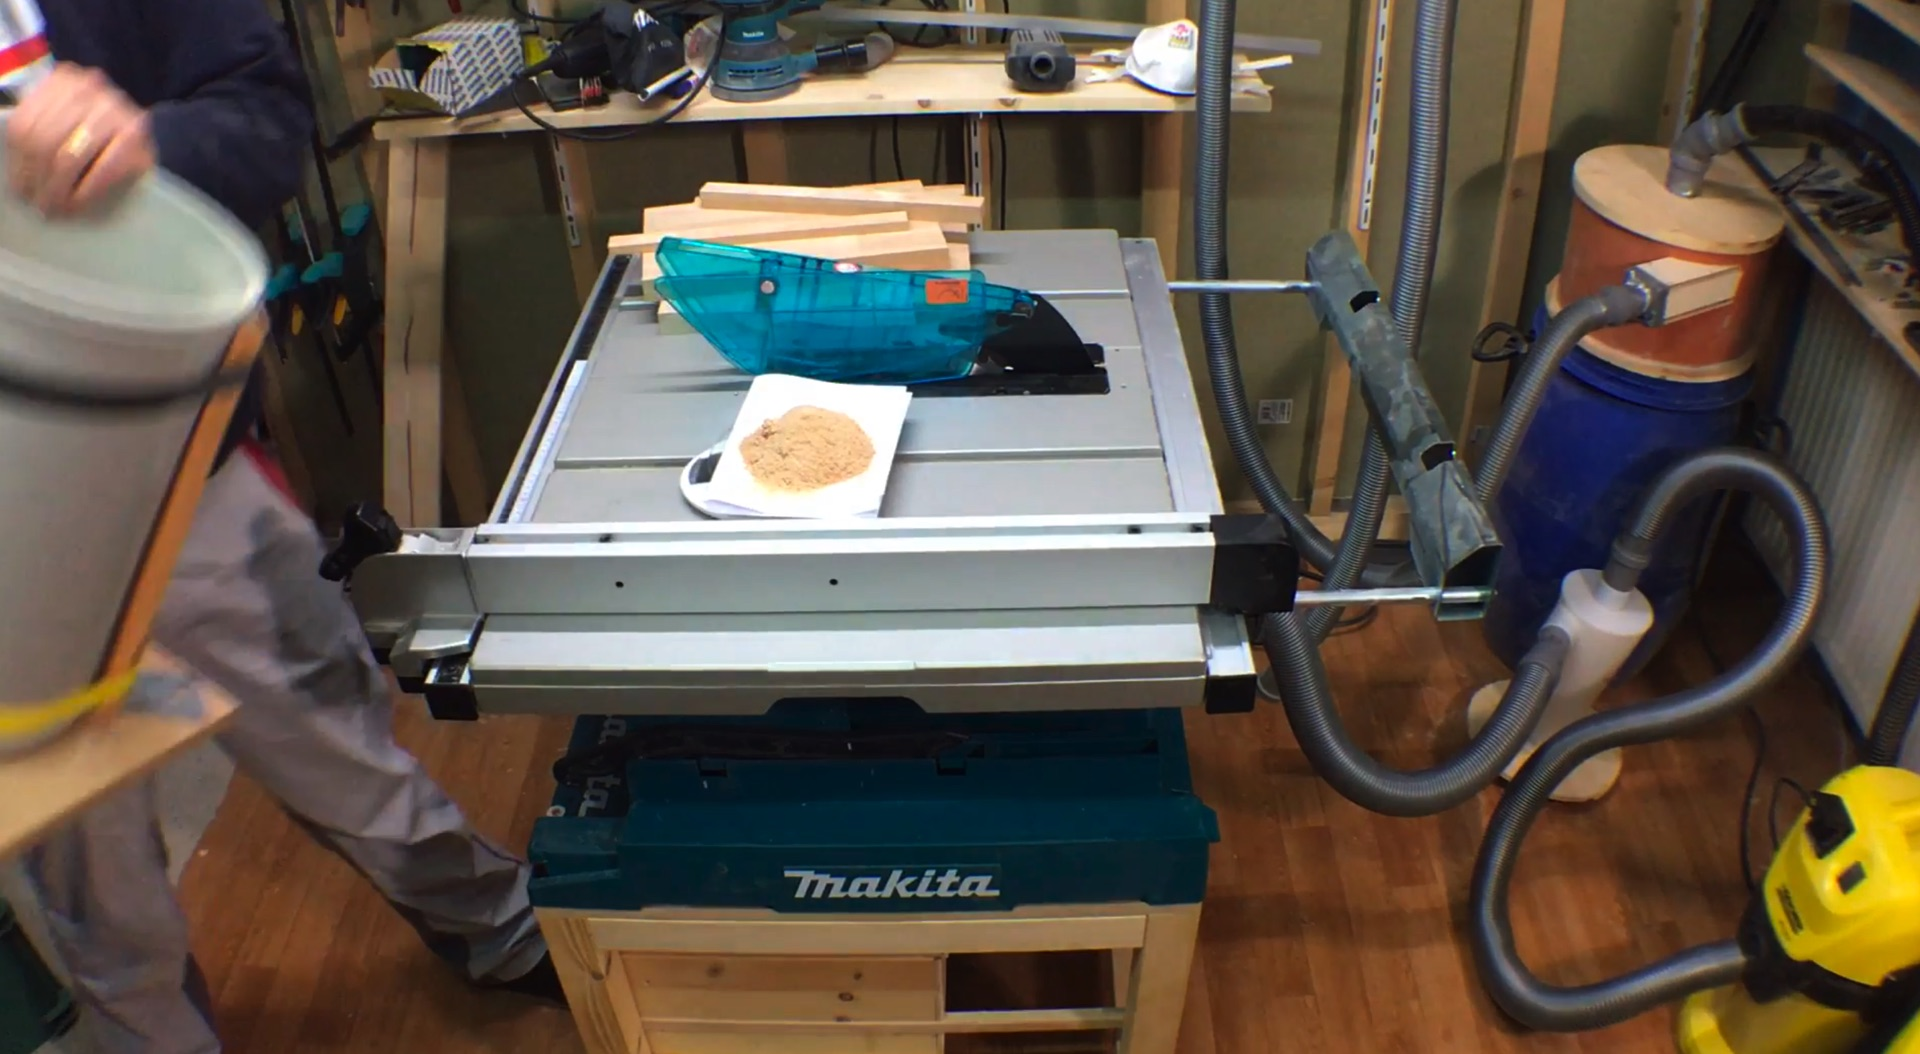 Measuring the suction capabilities of the system on my table saw